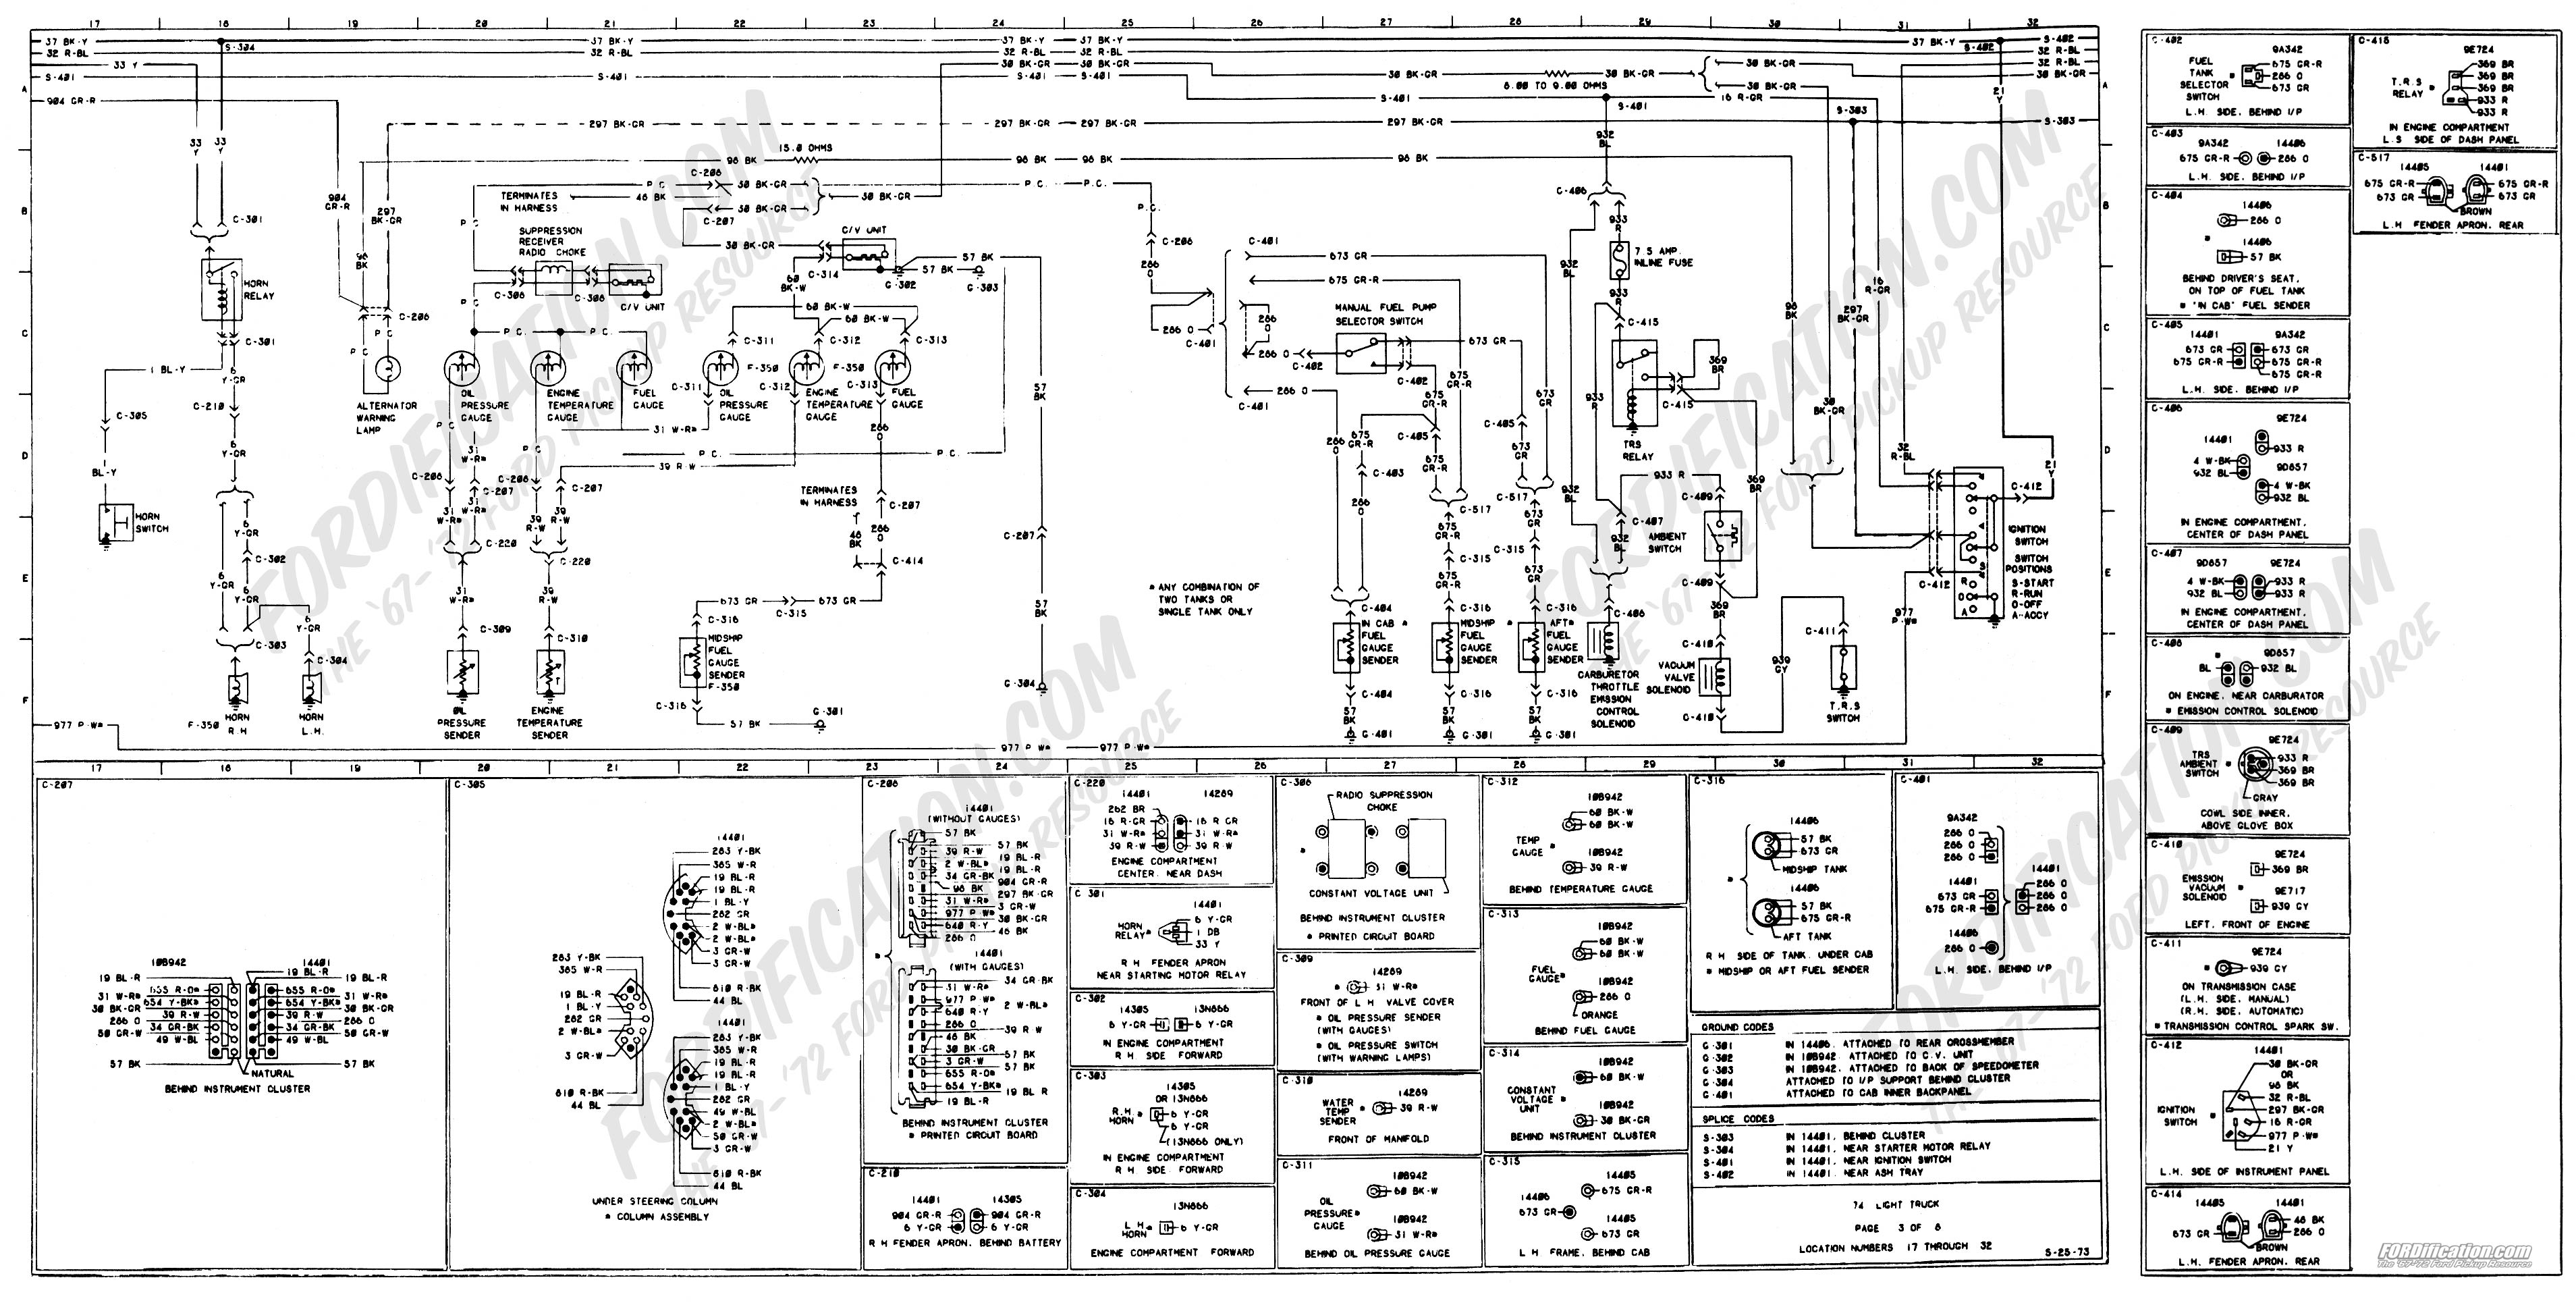 1973 1979 ford truck wiring diagrams schematics fordification net rh fordification net 1974 ford f100 alternator wiring diagram 1969 Ford F100 Wiring Diagram